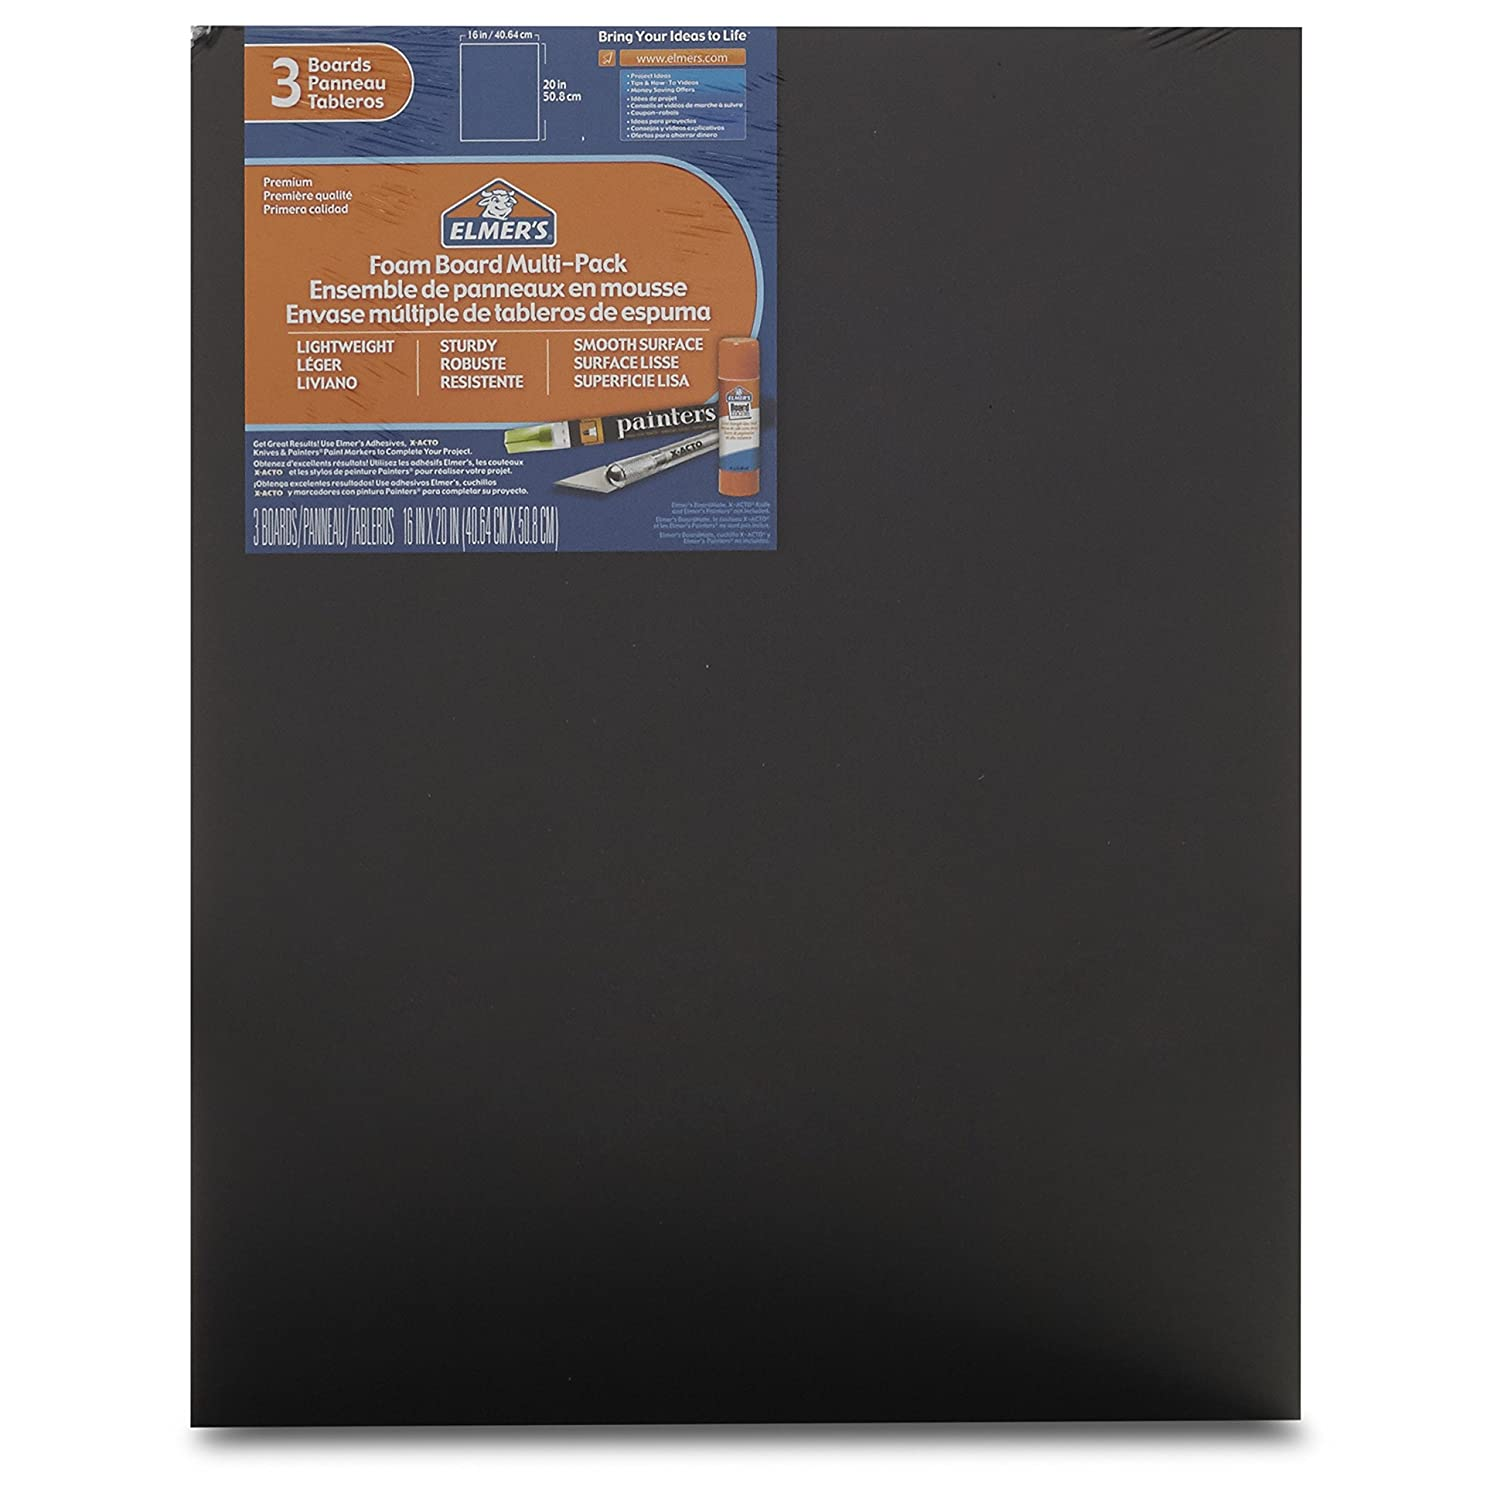 Elmer's Foam Boards, 16 x 20 Inches, Black/Black Core, 3-Count (950025) Elmer' s Foam Boards Elmers